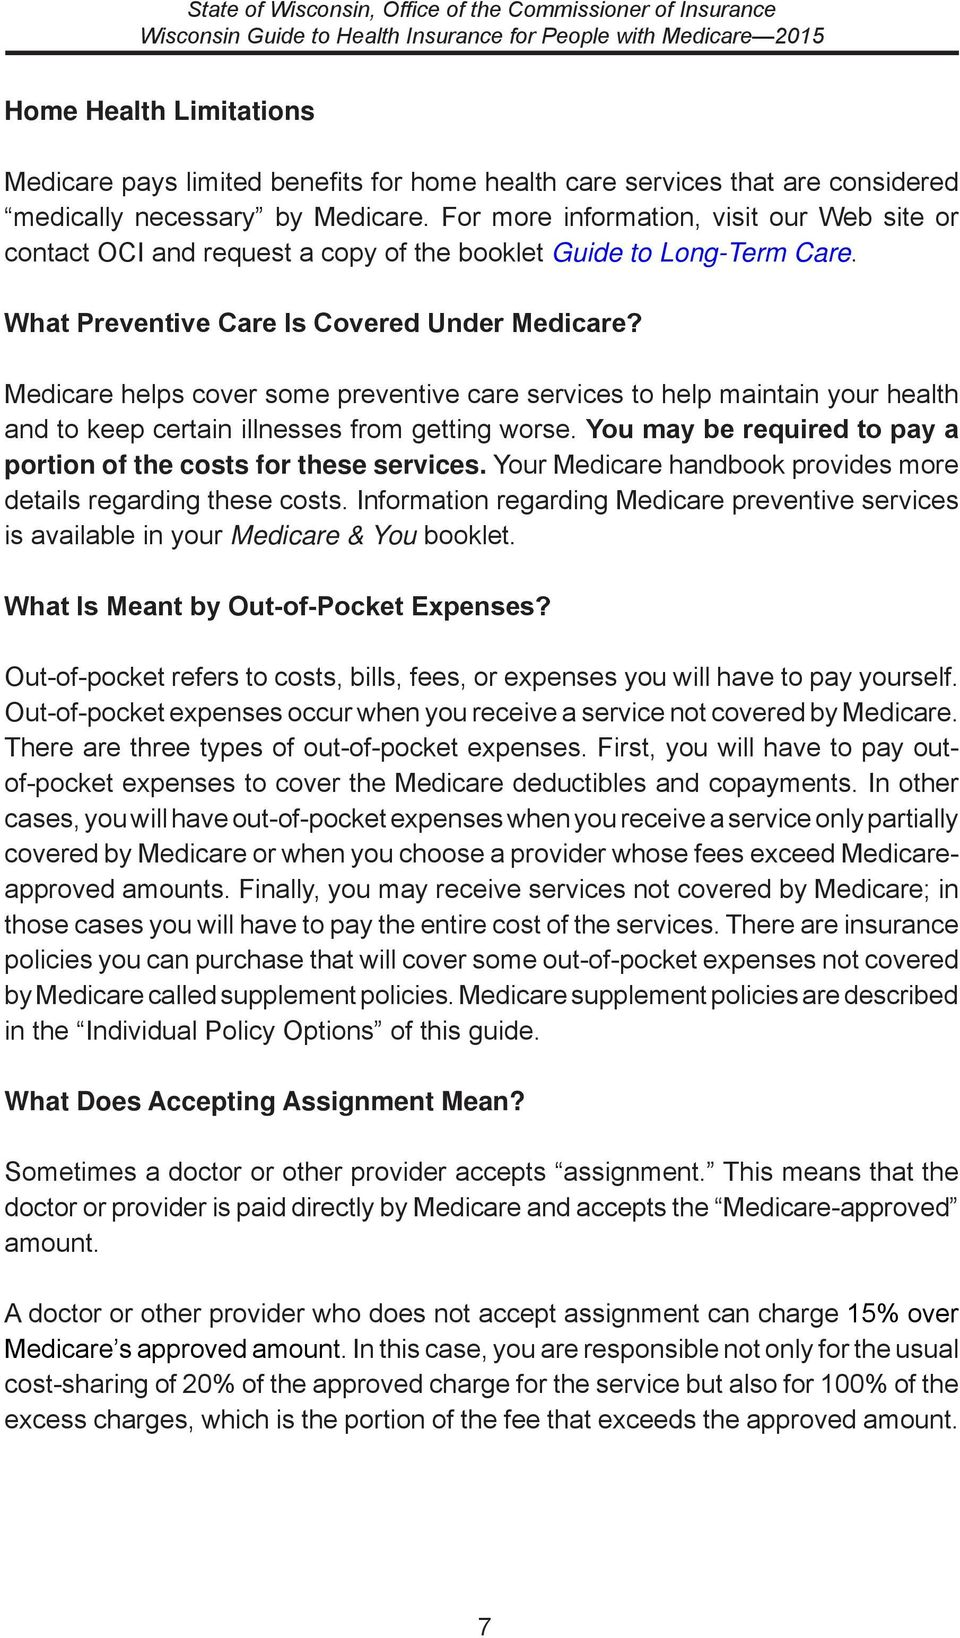 Medicare helps cover some preventive care services to help maintain your health and to keep certain illnesses from getting worse. You may be required to pay a portion of the costs for these services.